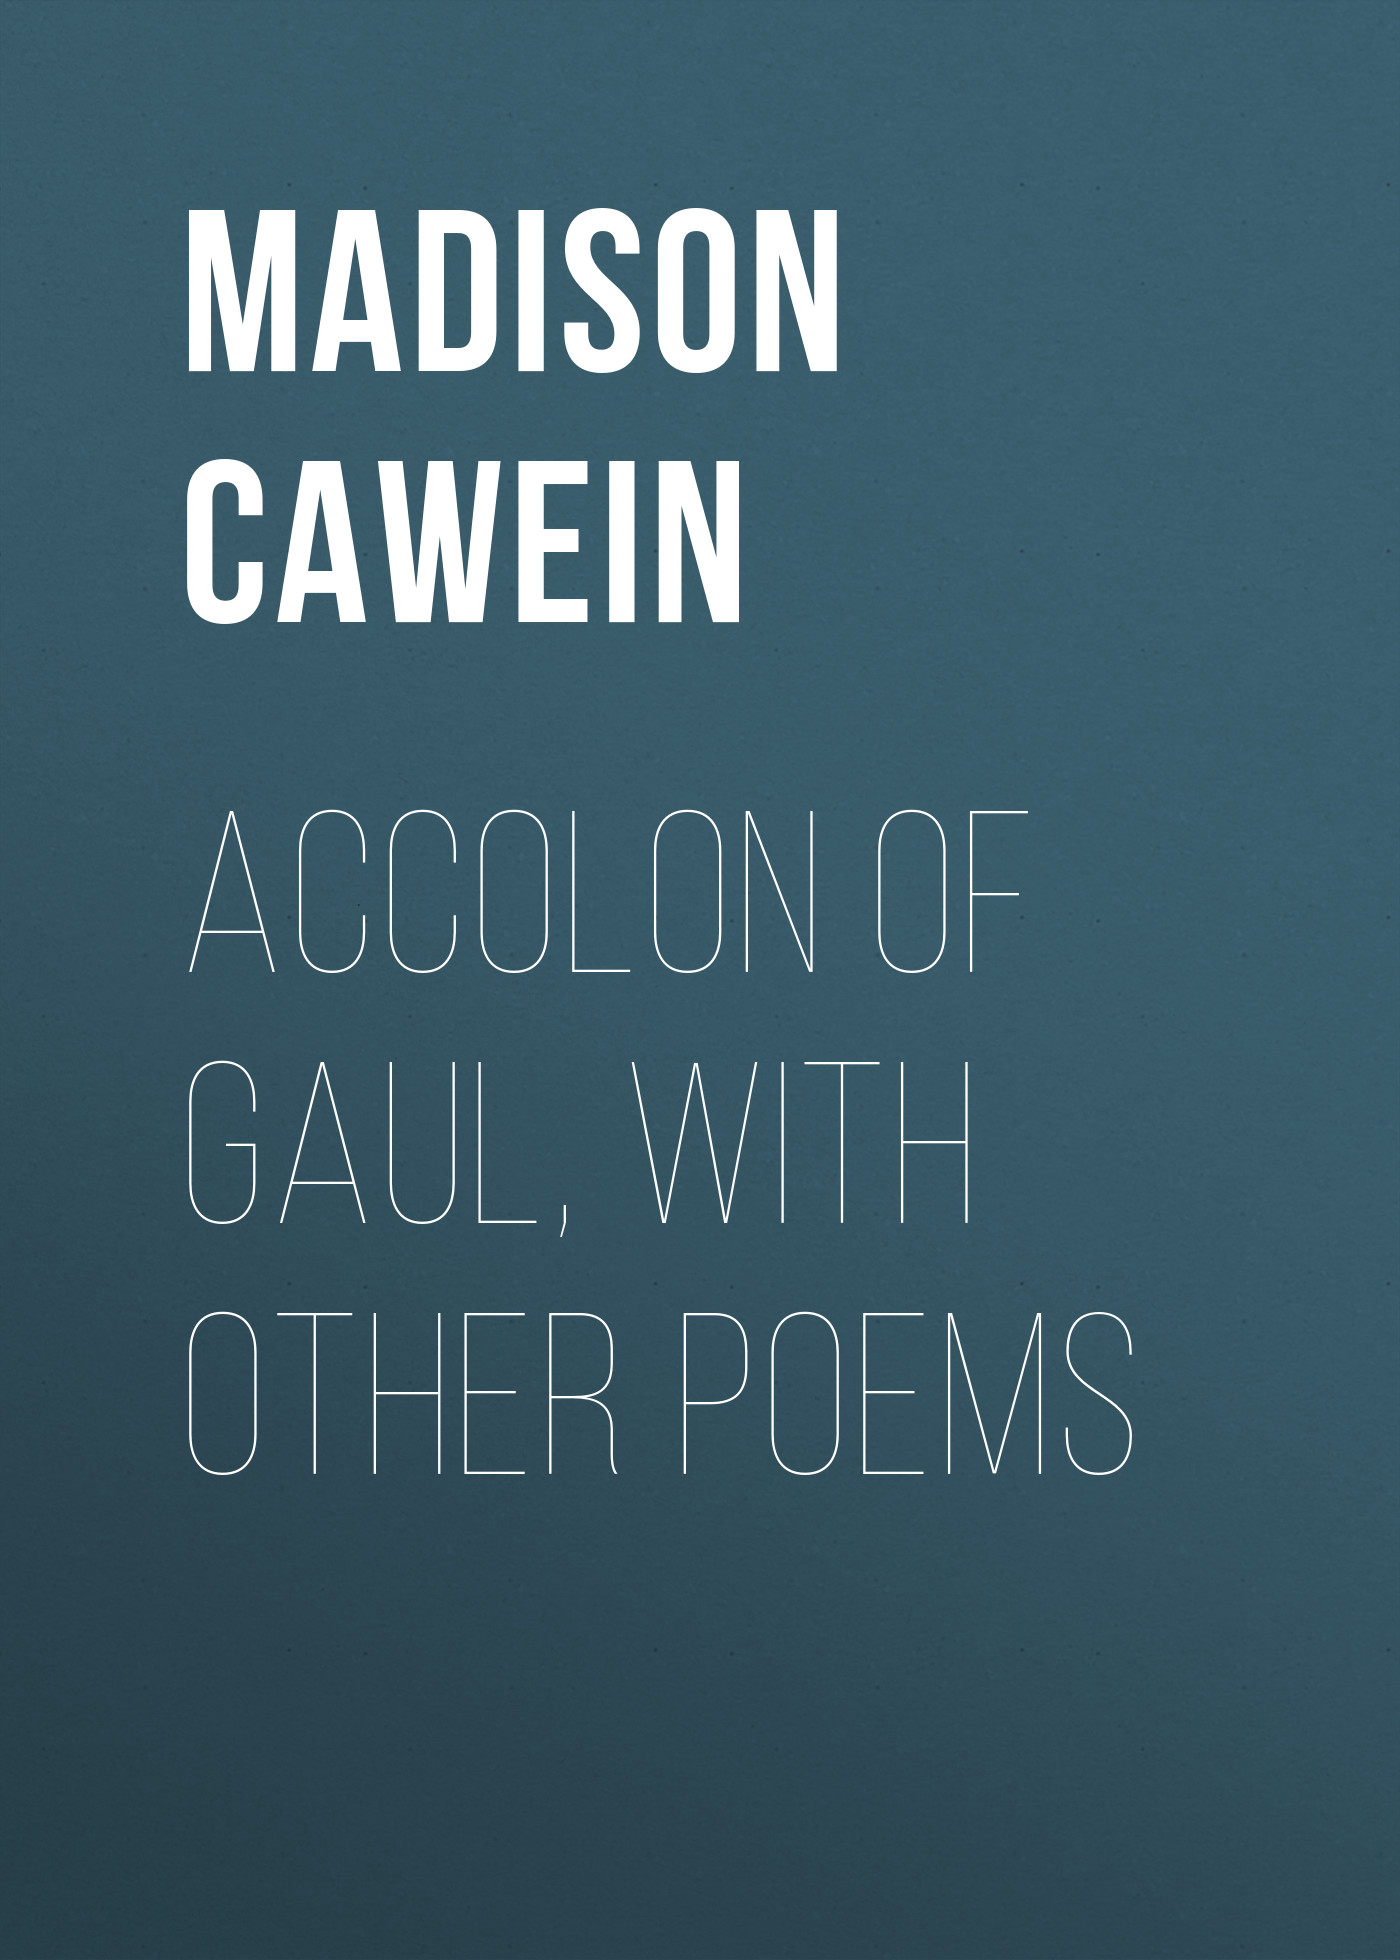 Cawein Madison Julius Accolon of Gaul, with Other Poems